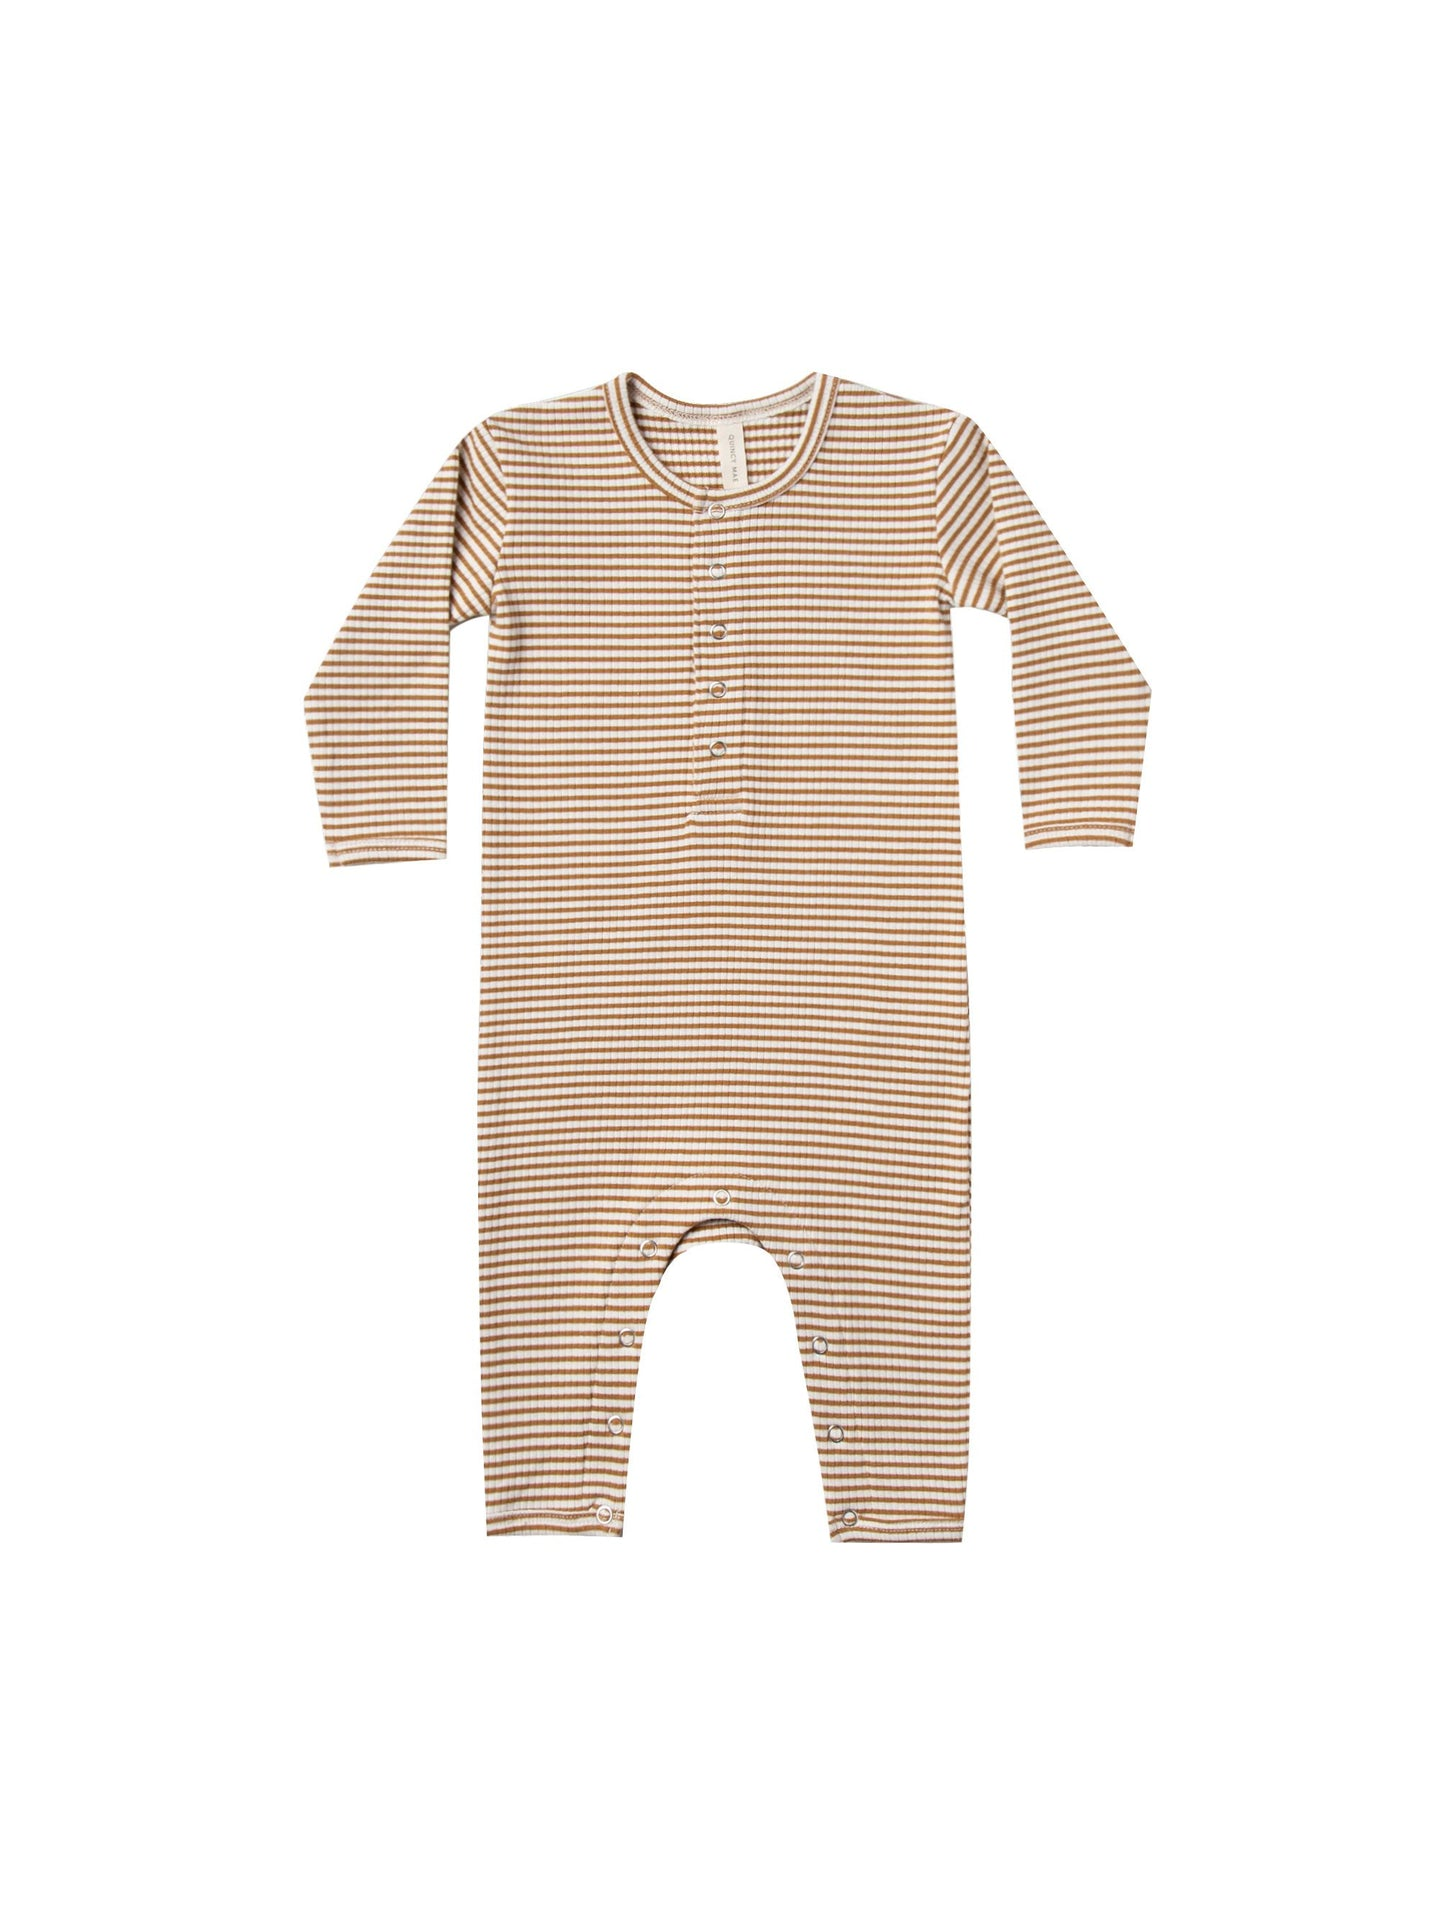 Quincy Mae - Organic Ribbed Baby Jumpsuit - Walnut Stripe